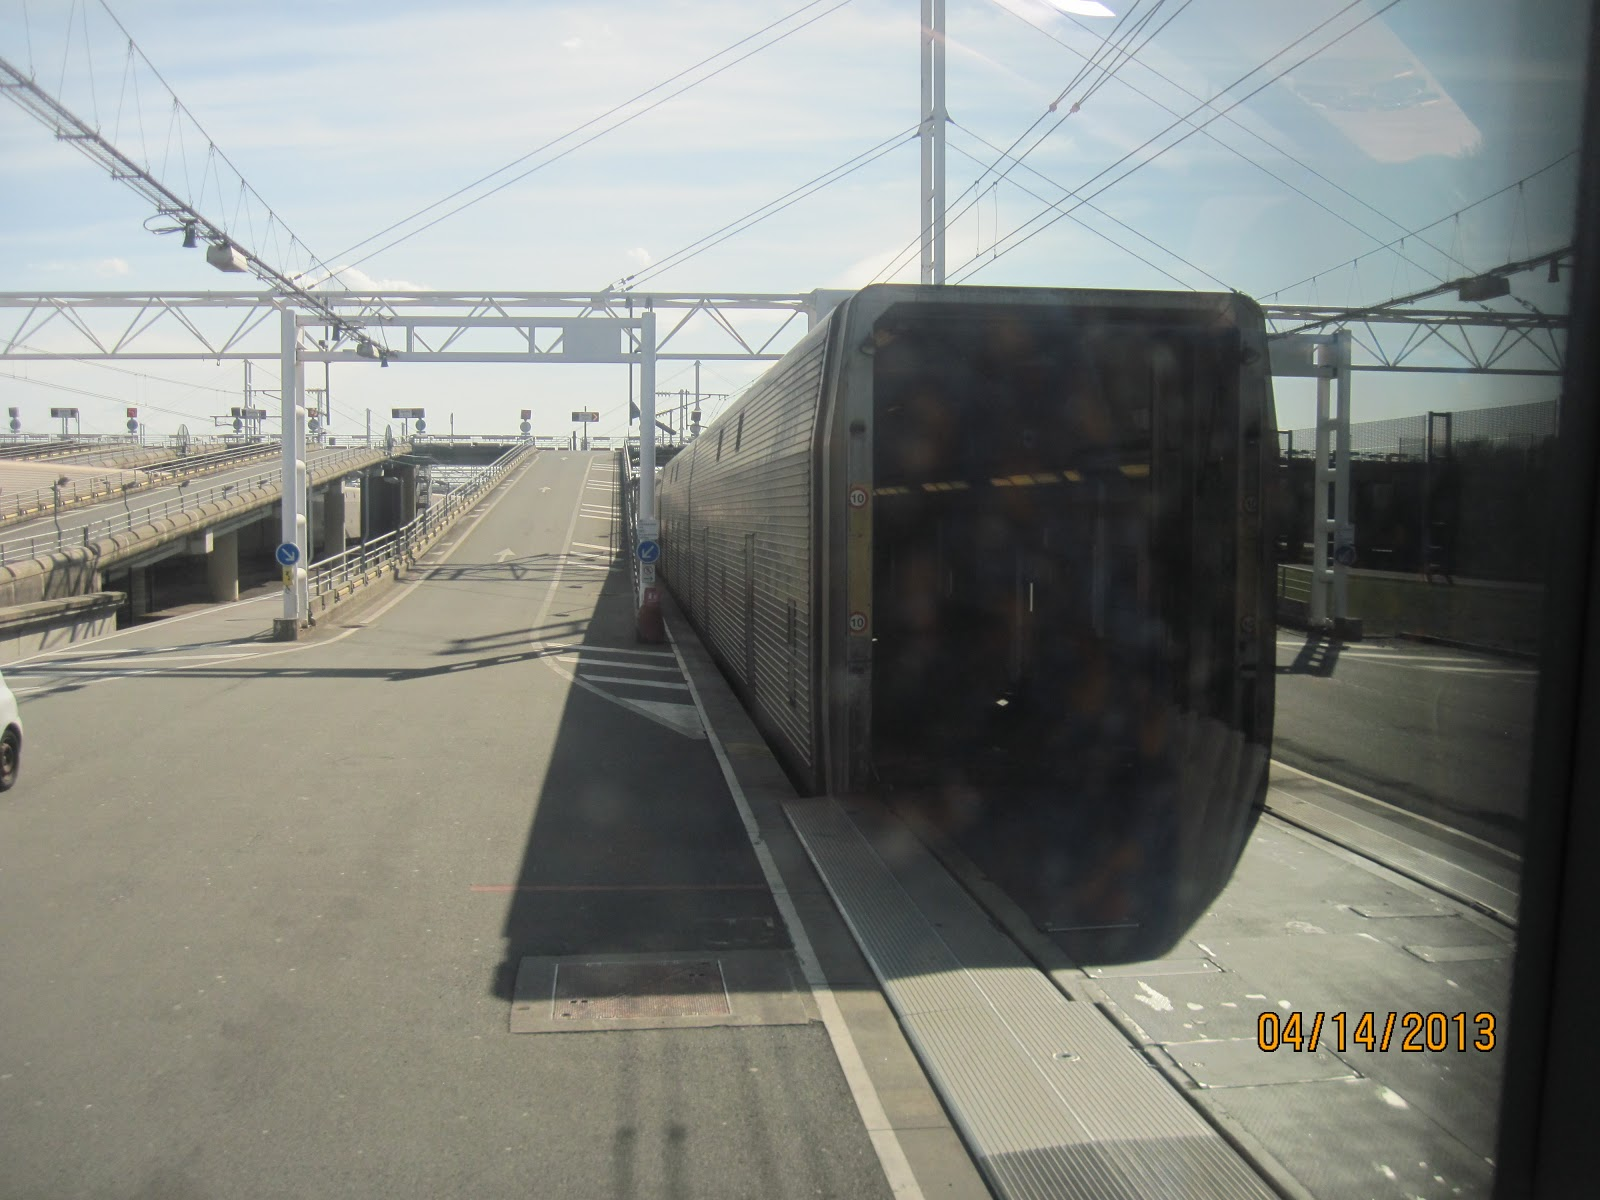 our bus enters this car and moves forward in the tunnel of the train to the last car our car on the train only has our bus